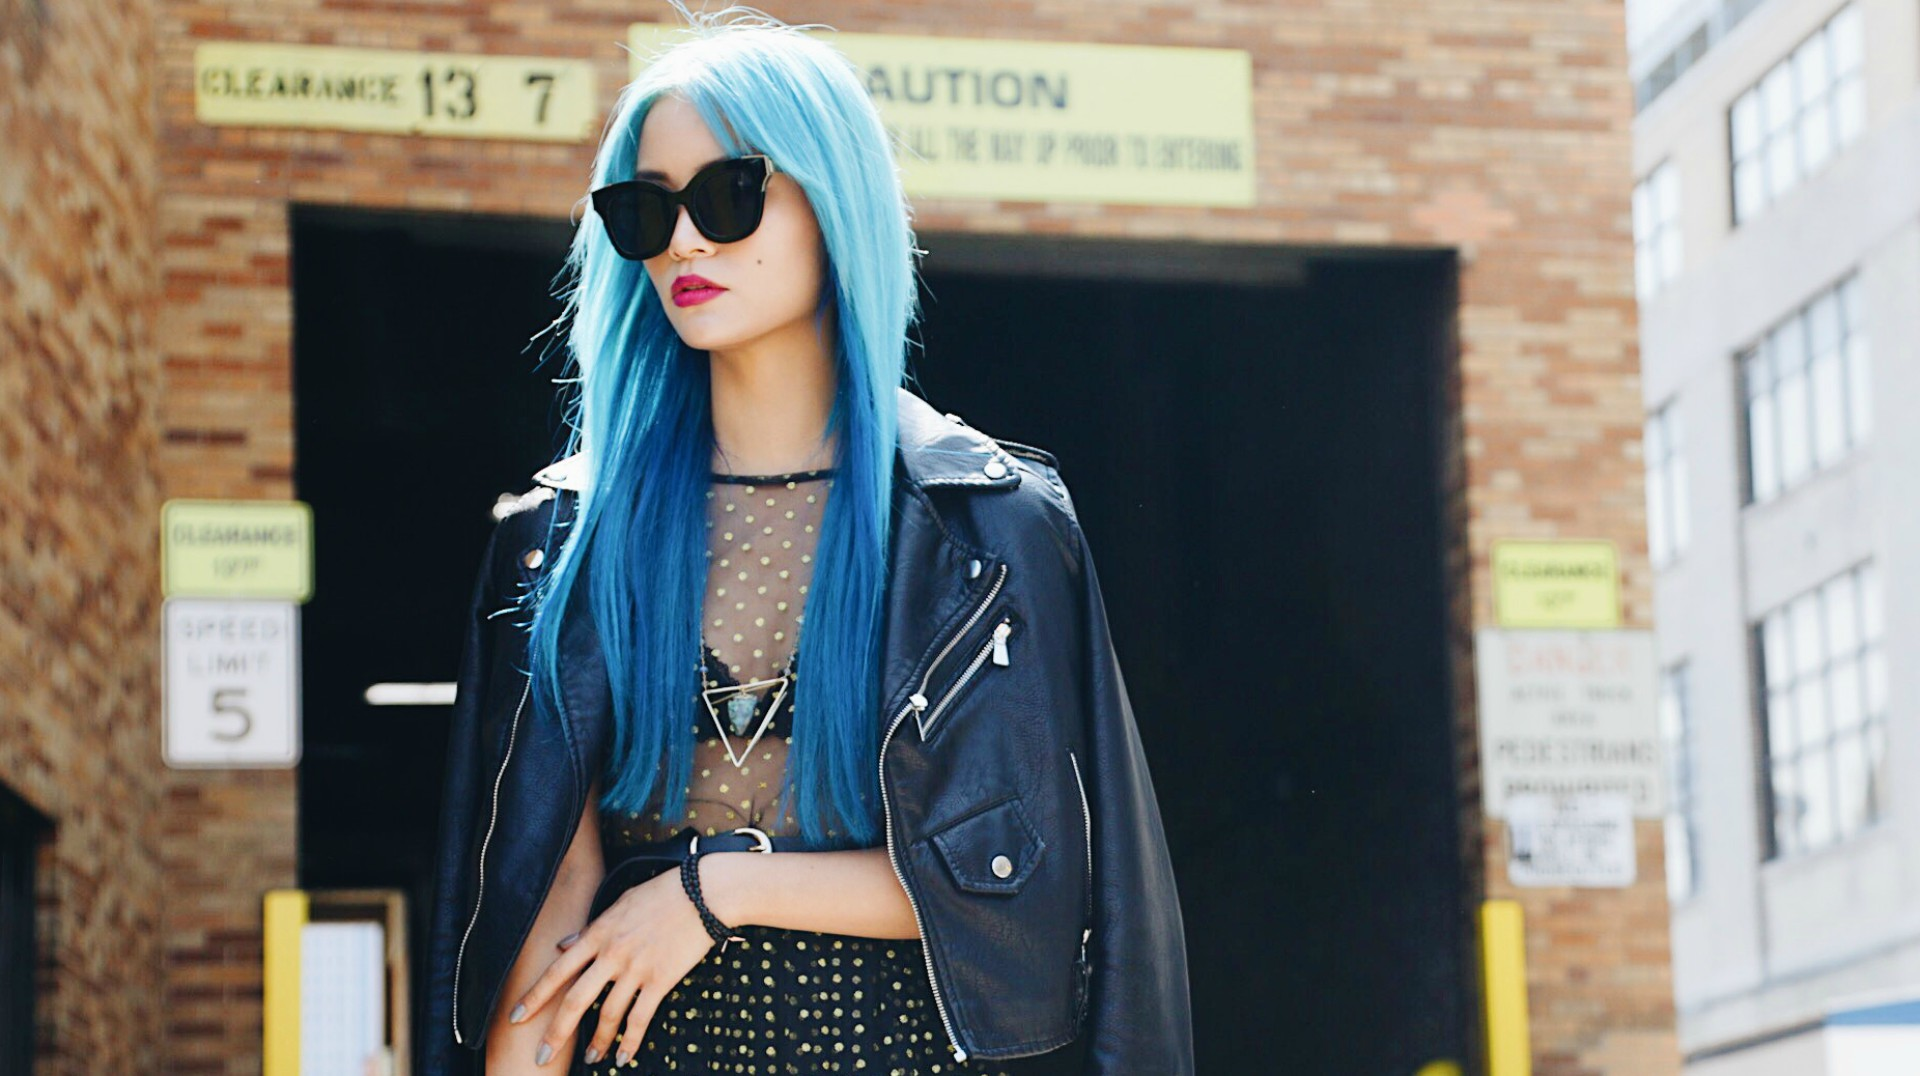 5 No-Commitment Ways to Change Your Hair Color for Halloween